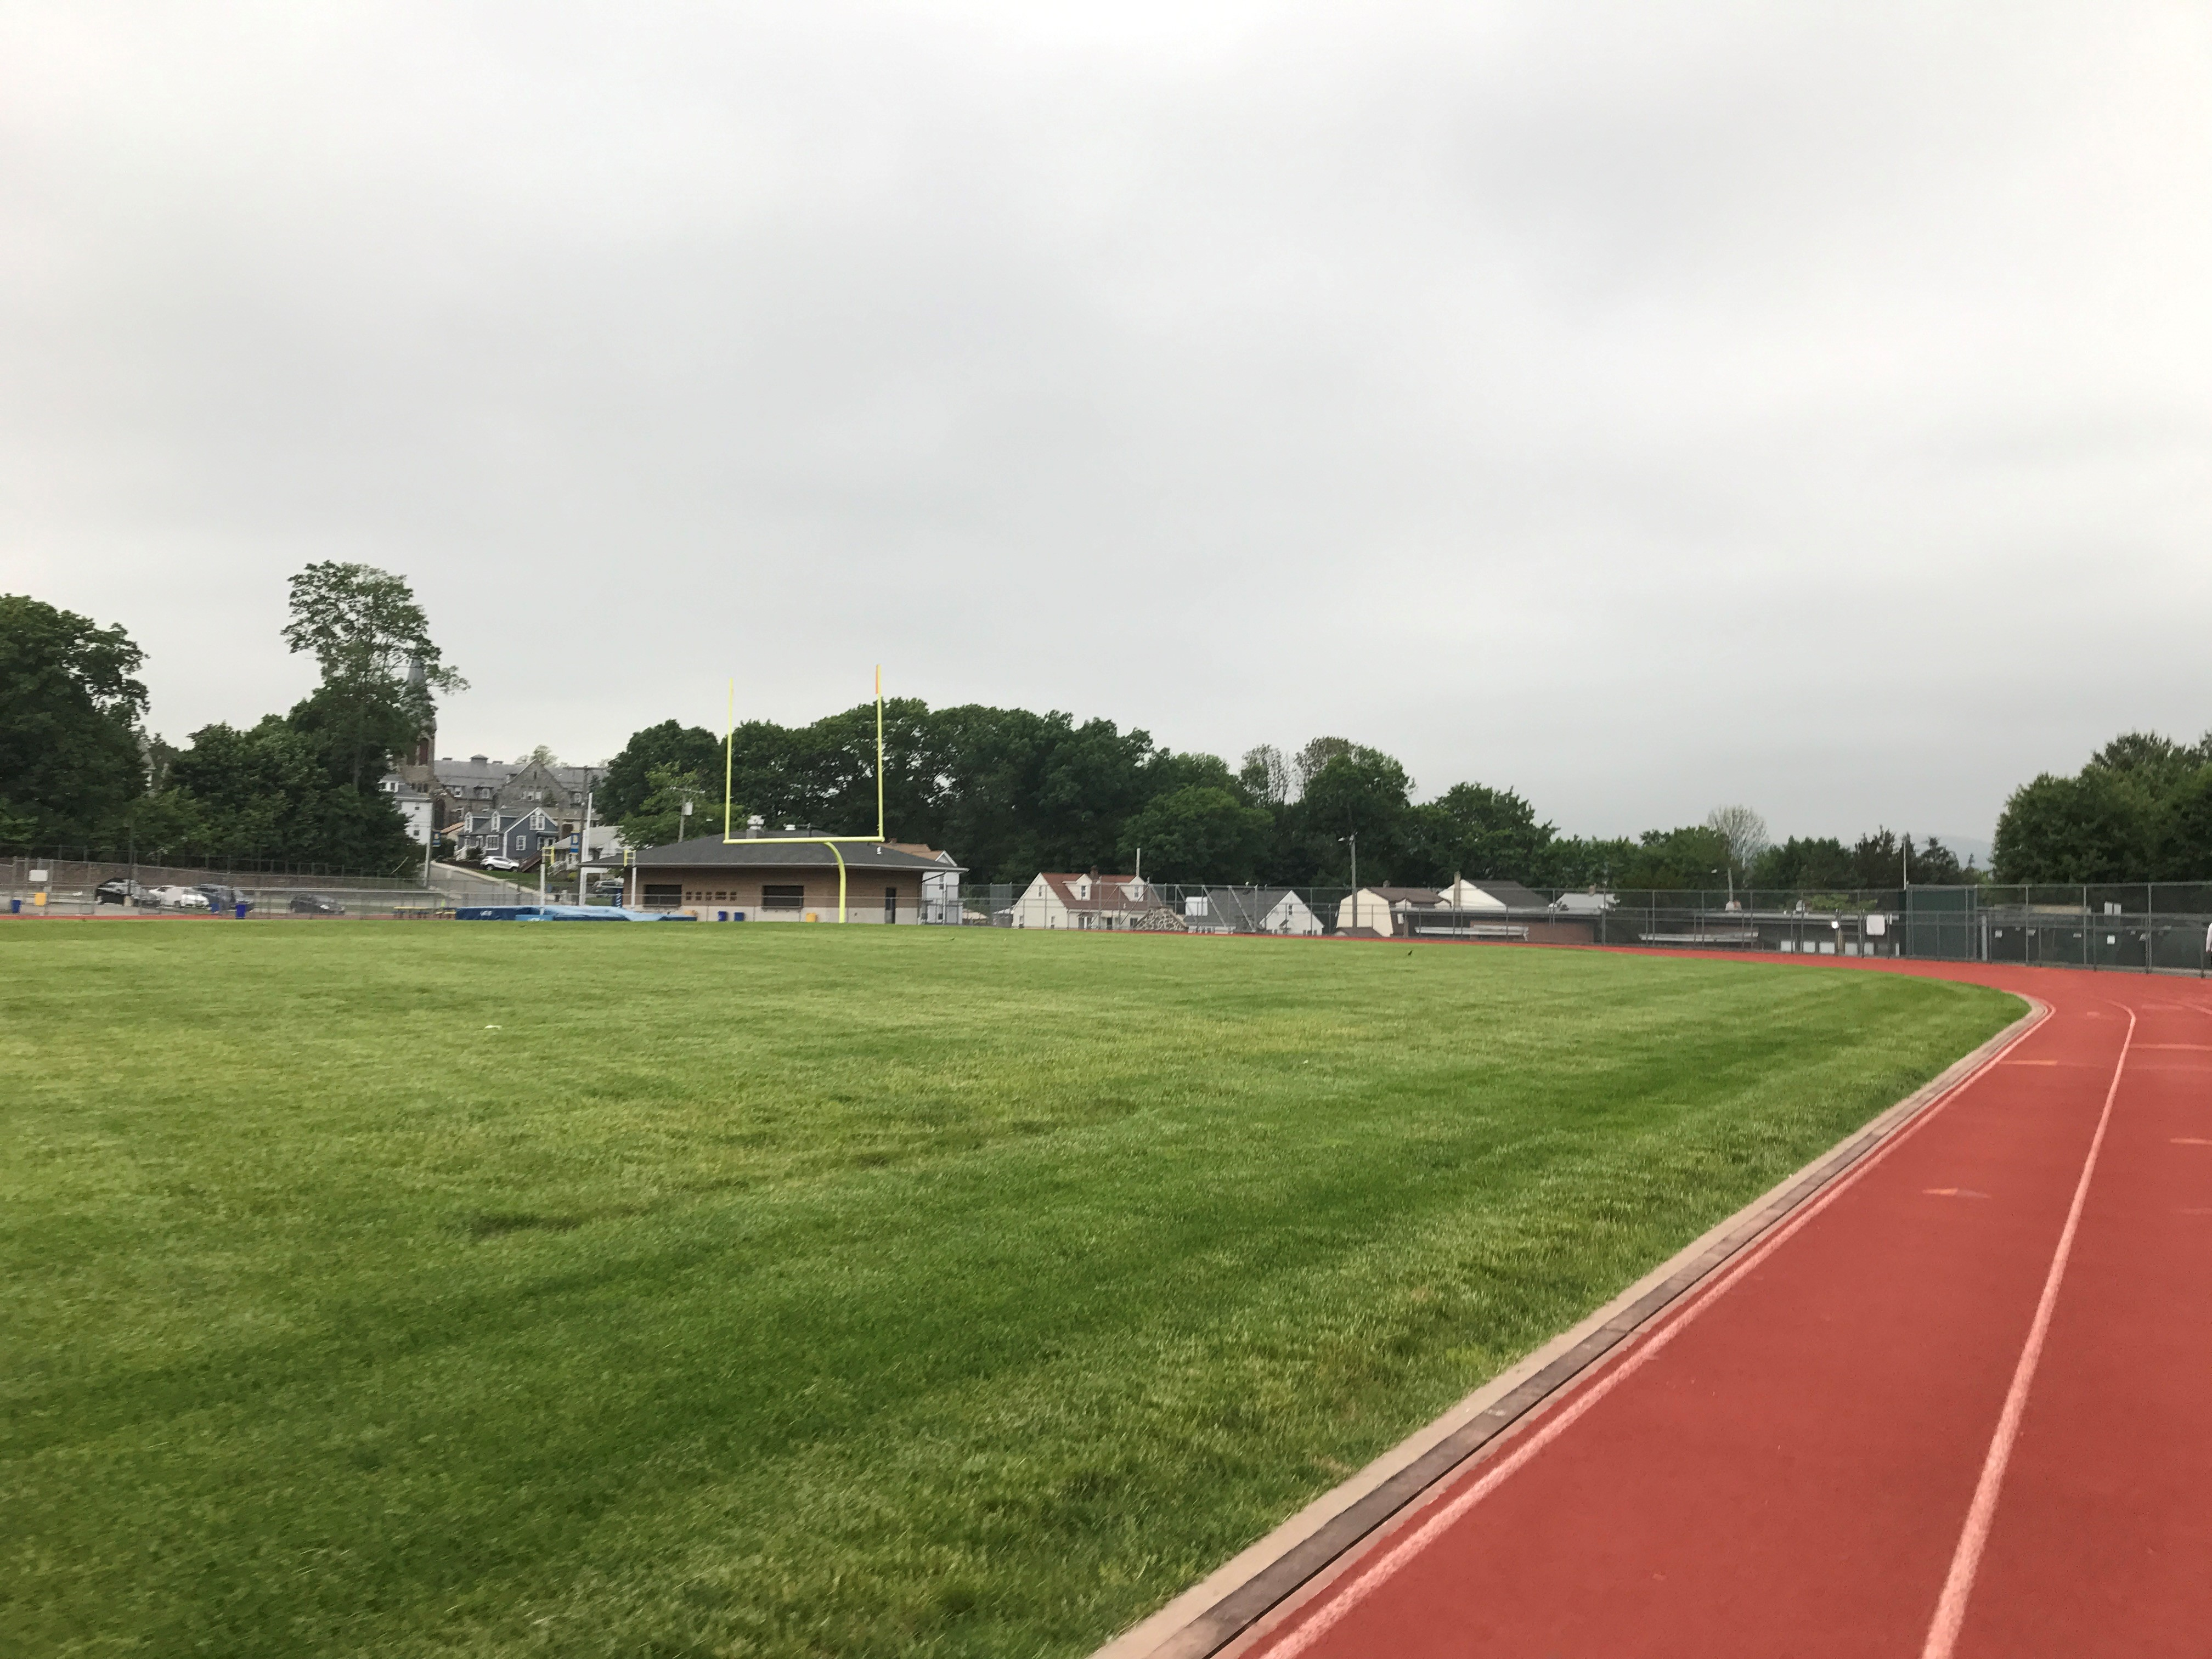 A stormy day at a high school track that could use a weather safety solution for schools